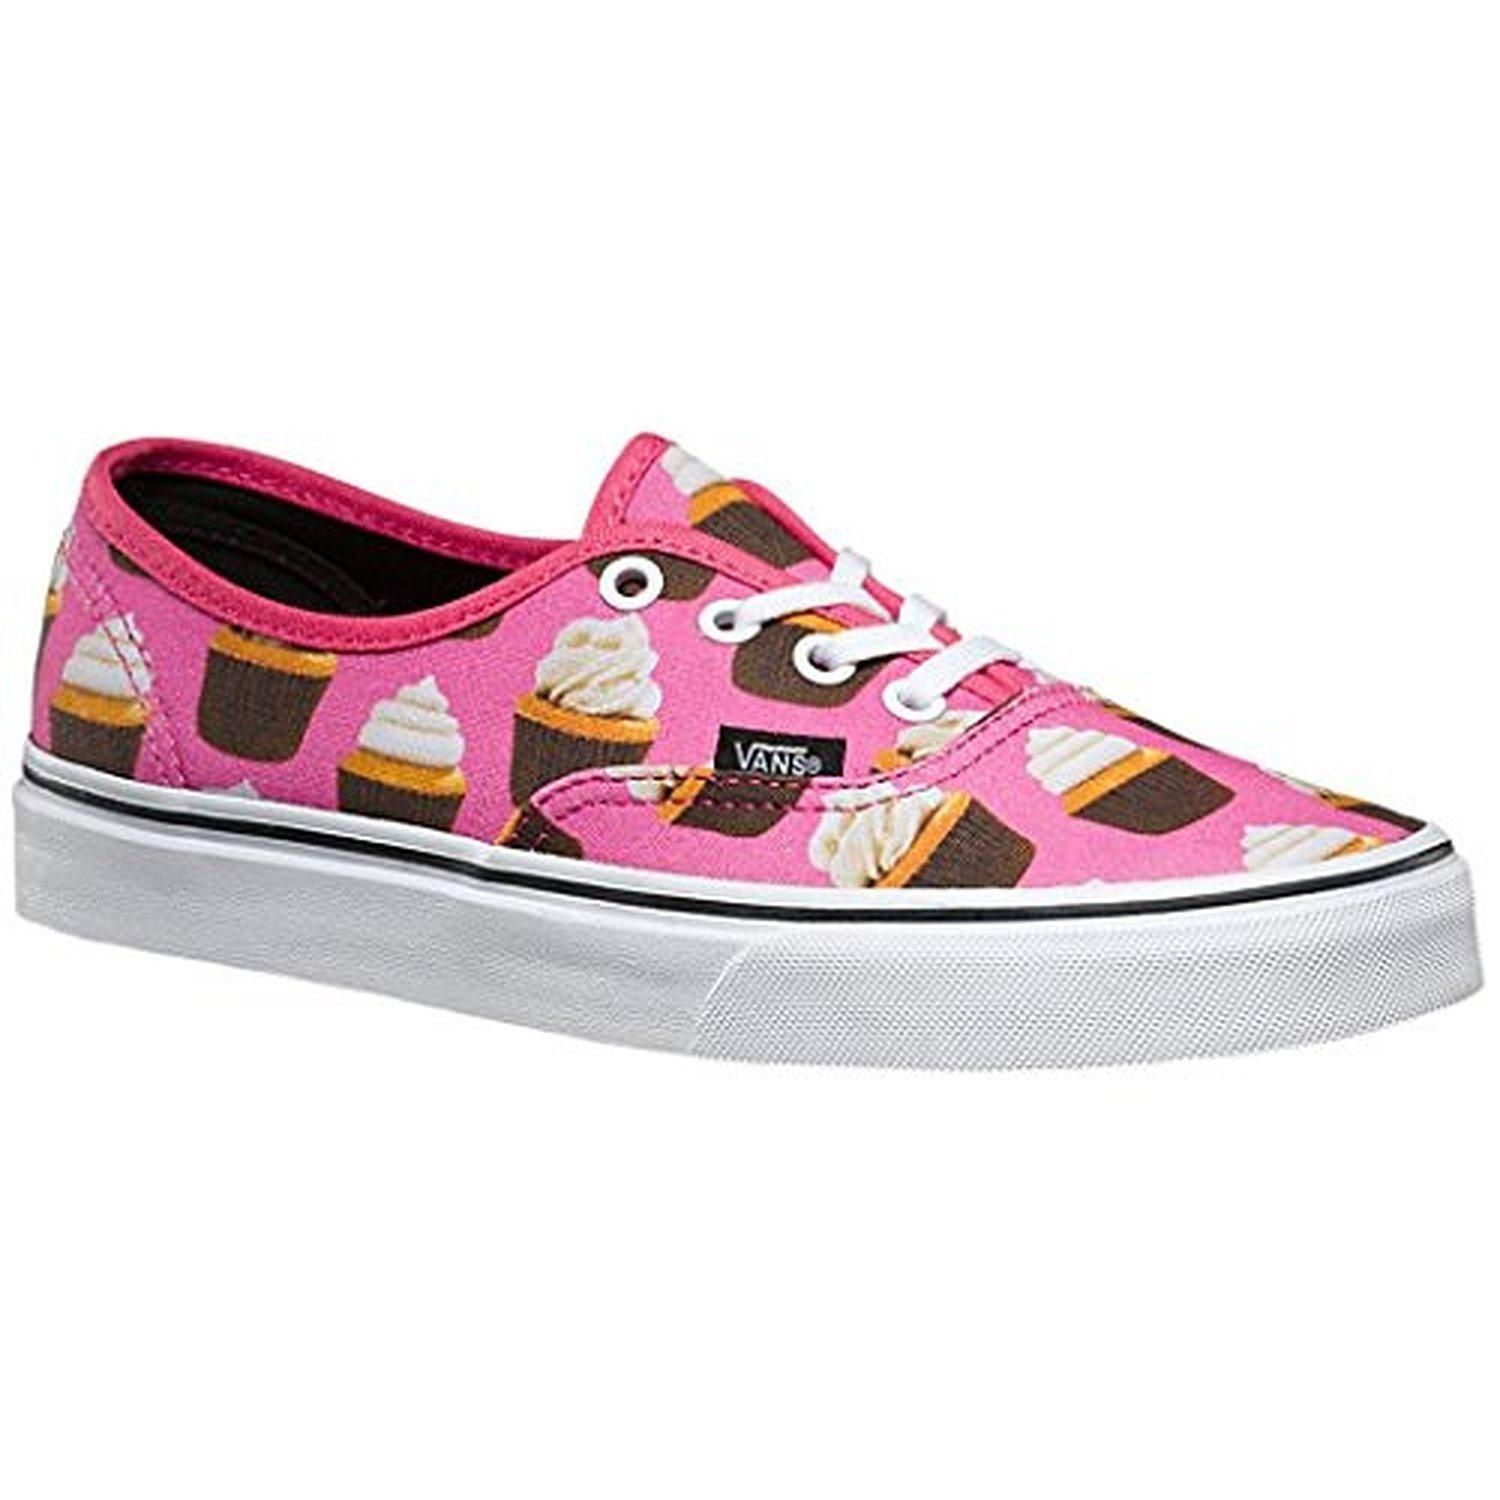 Vans Authentic Late Night Hot PinkCup Cakes Mens 7 Women's